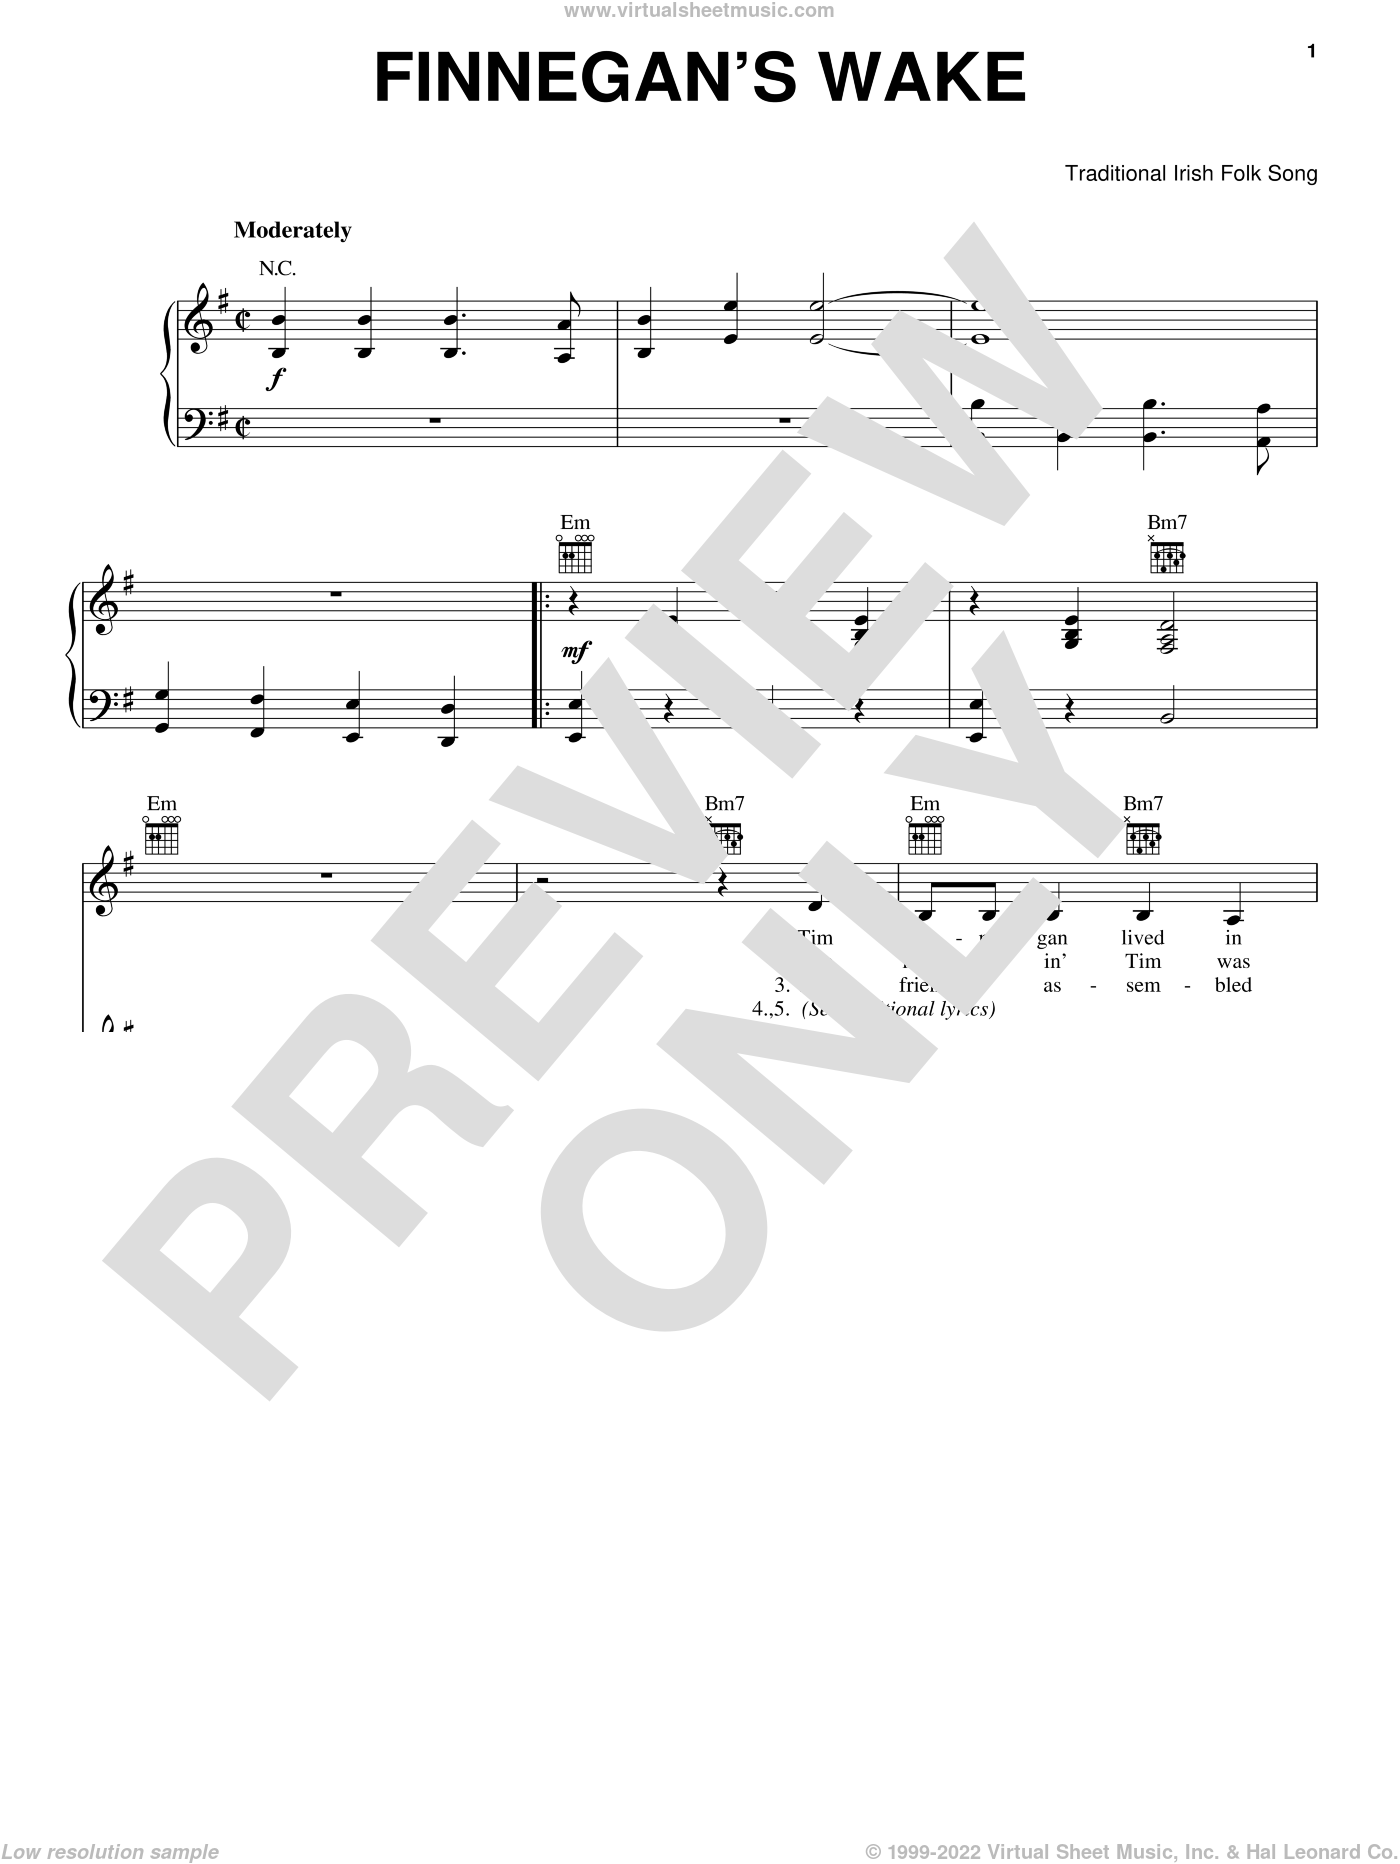 Finnegan's Wake sheet music for voice, piano or guitar